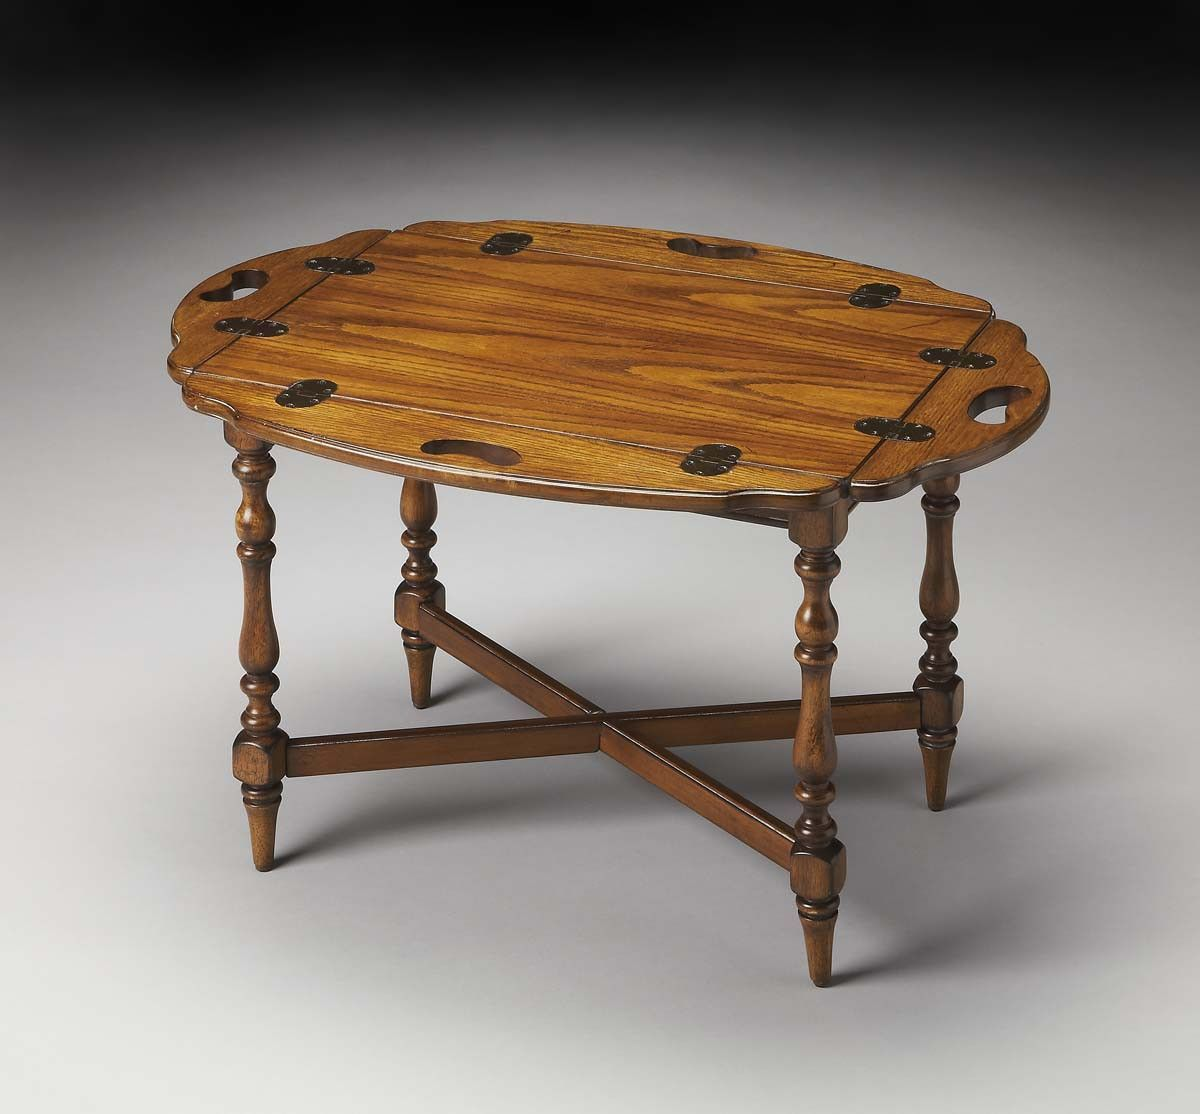 Olive Ash Burl Manchester Butler Table Masterpiece - 2216001